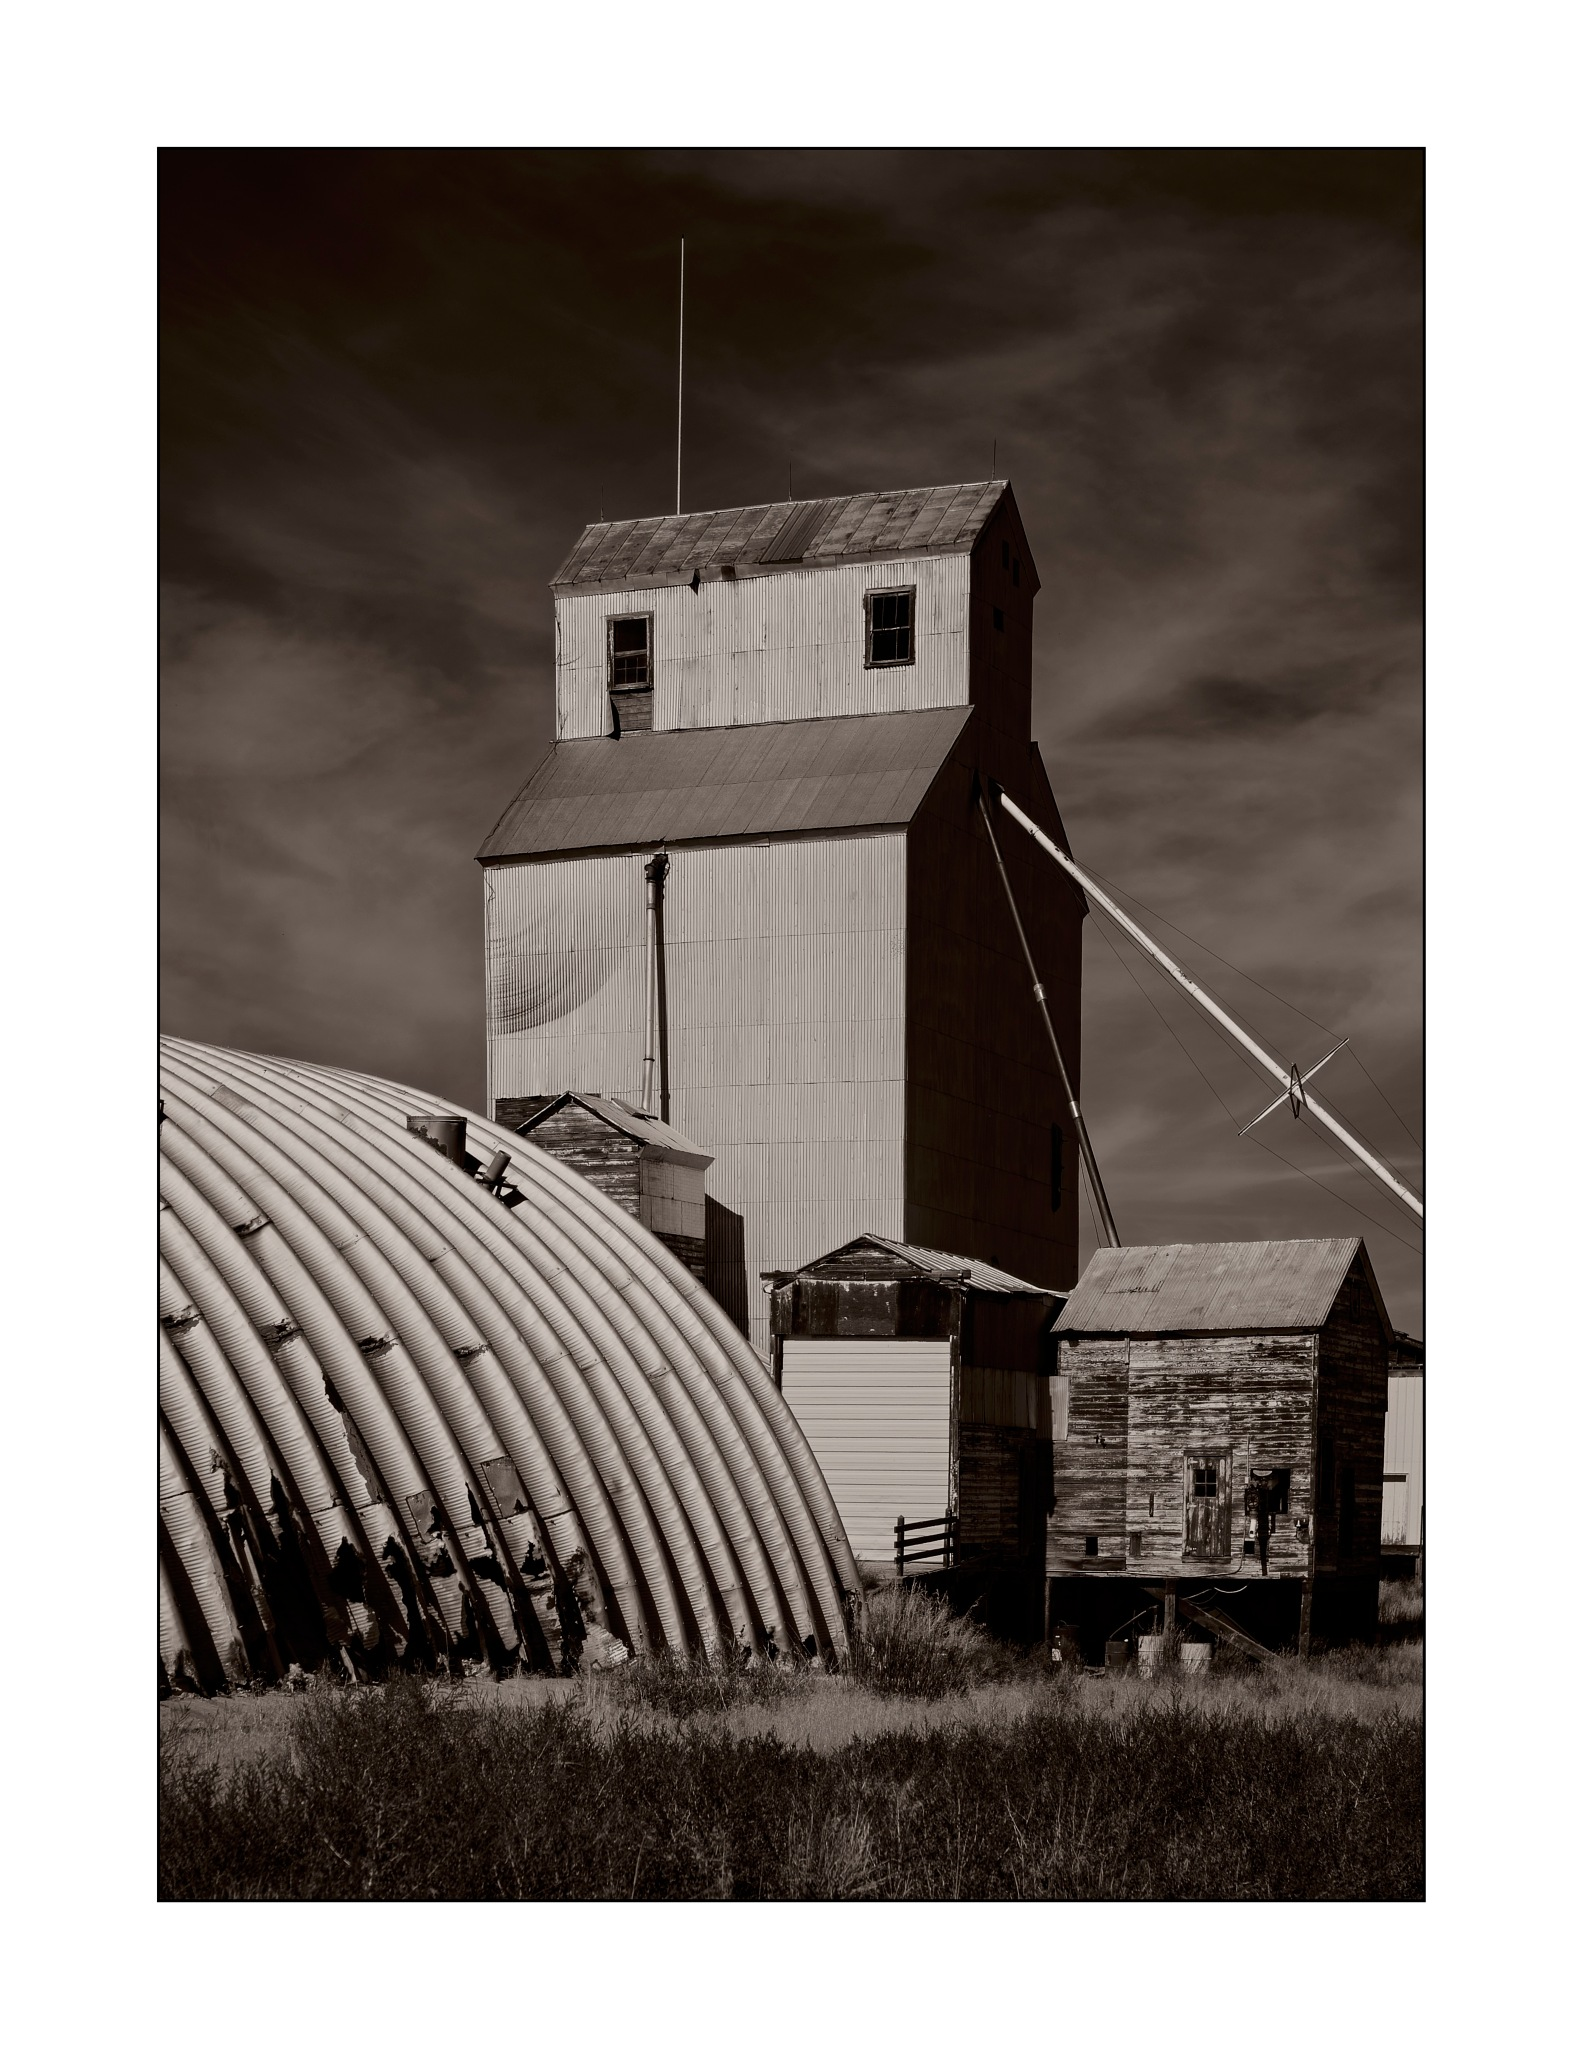 Wilsall, MT by jhulton